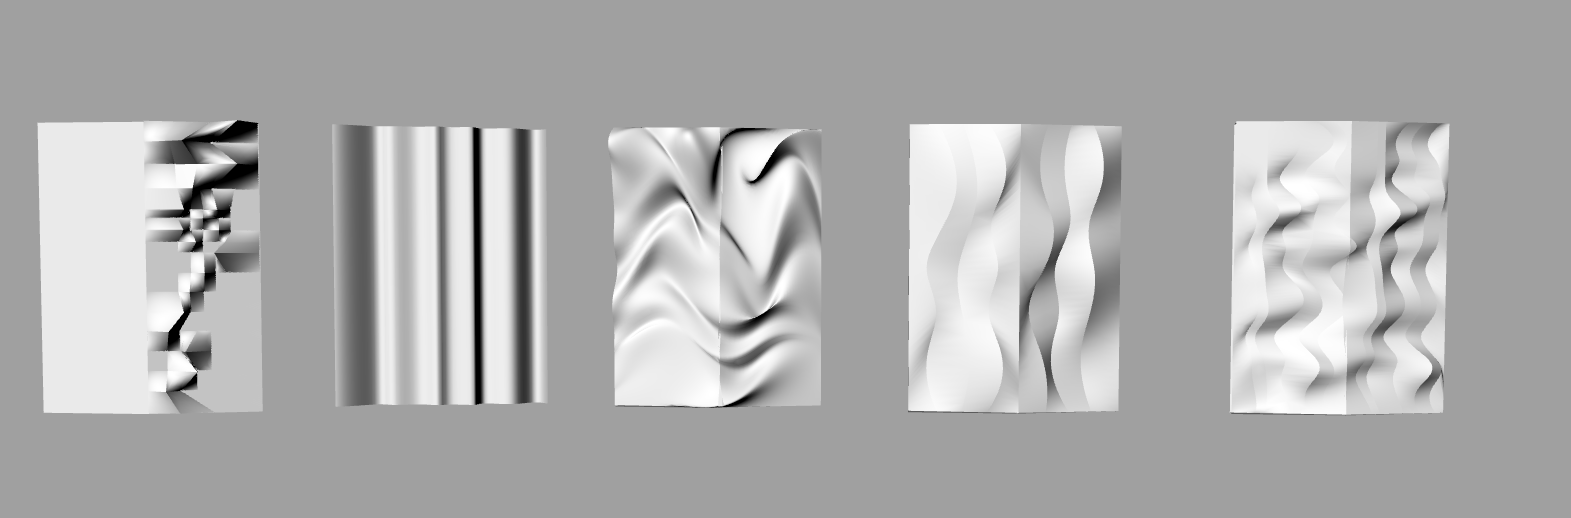 Cave Samples_Iterations 1-3.PNG